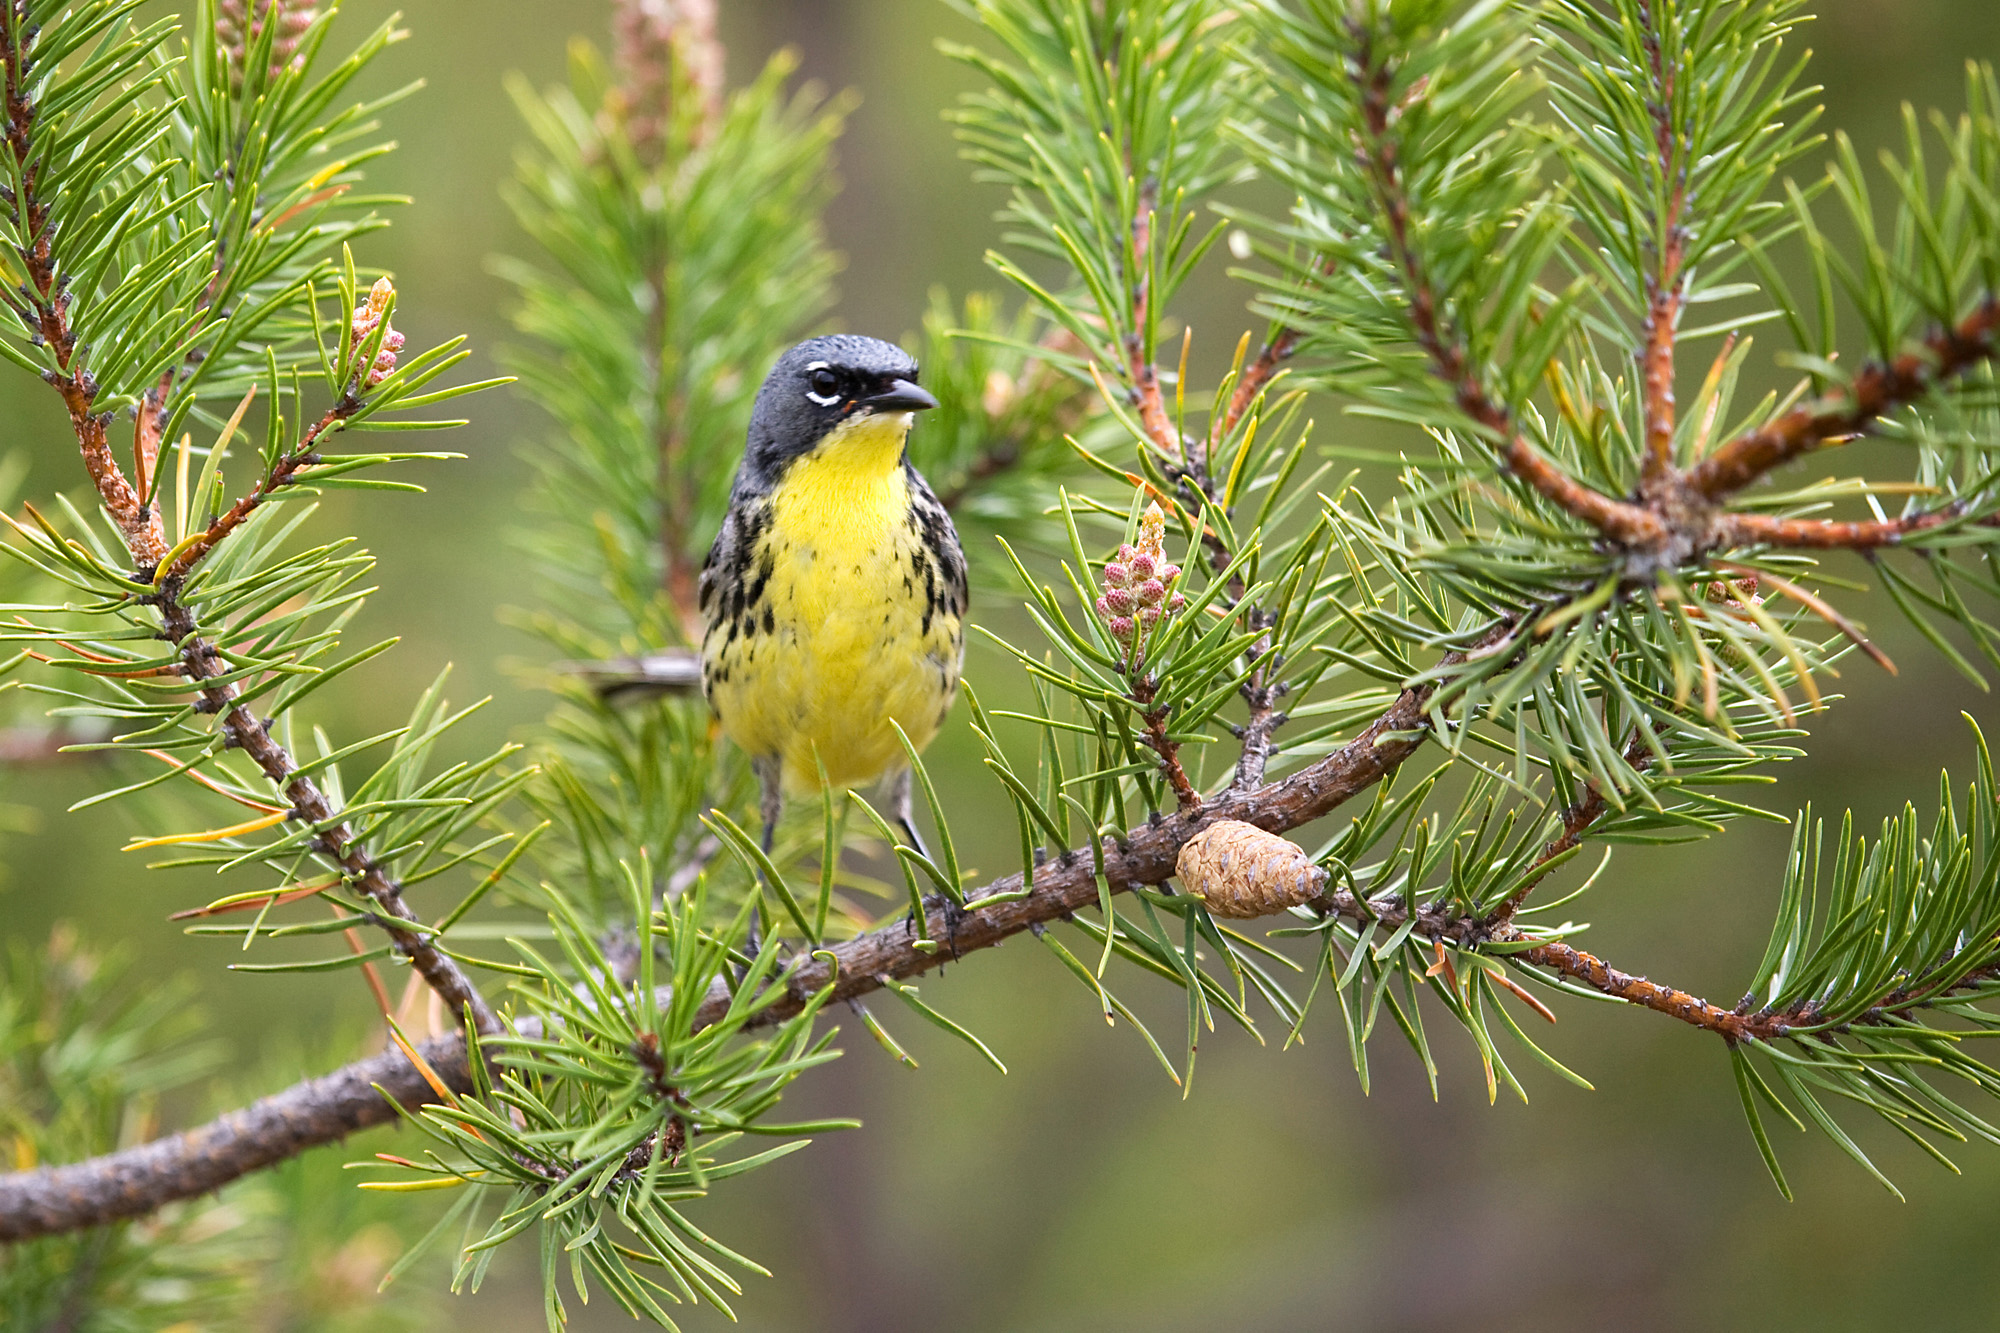 A Kirtland's warbler songbird standing on a tree branch